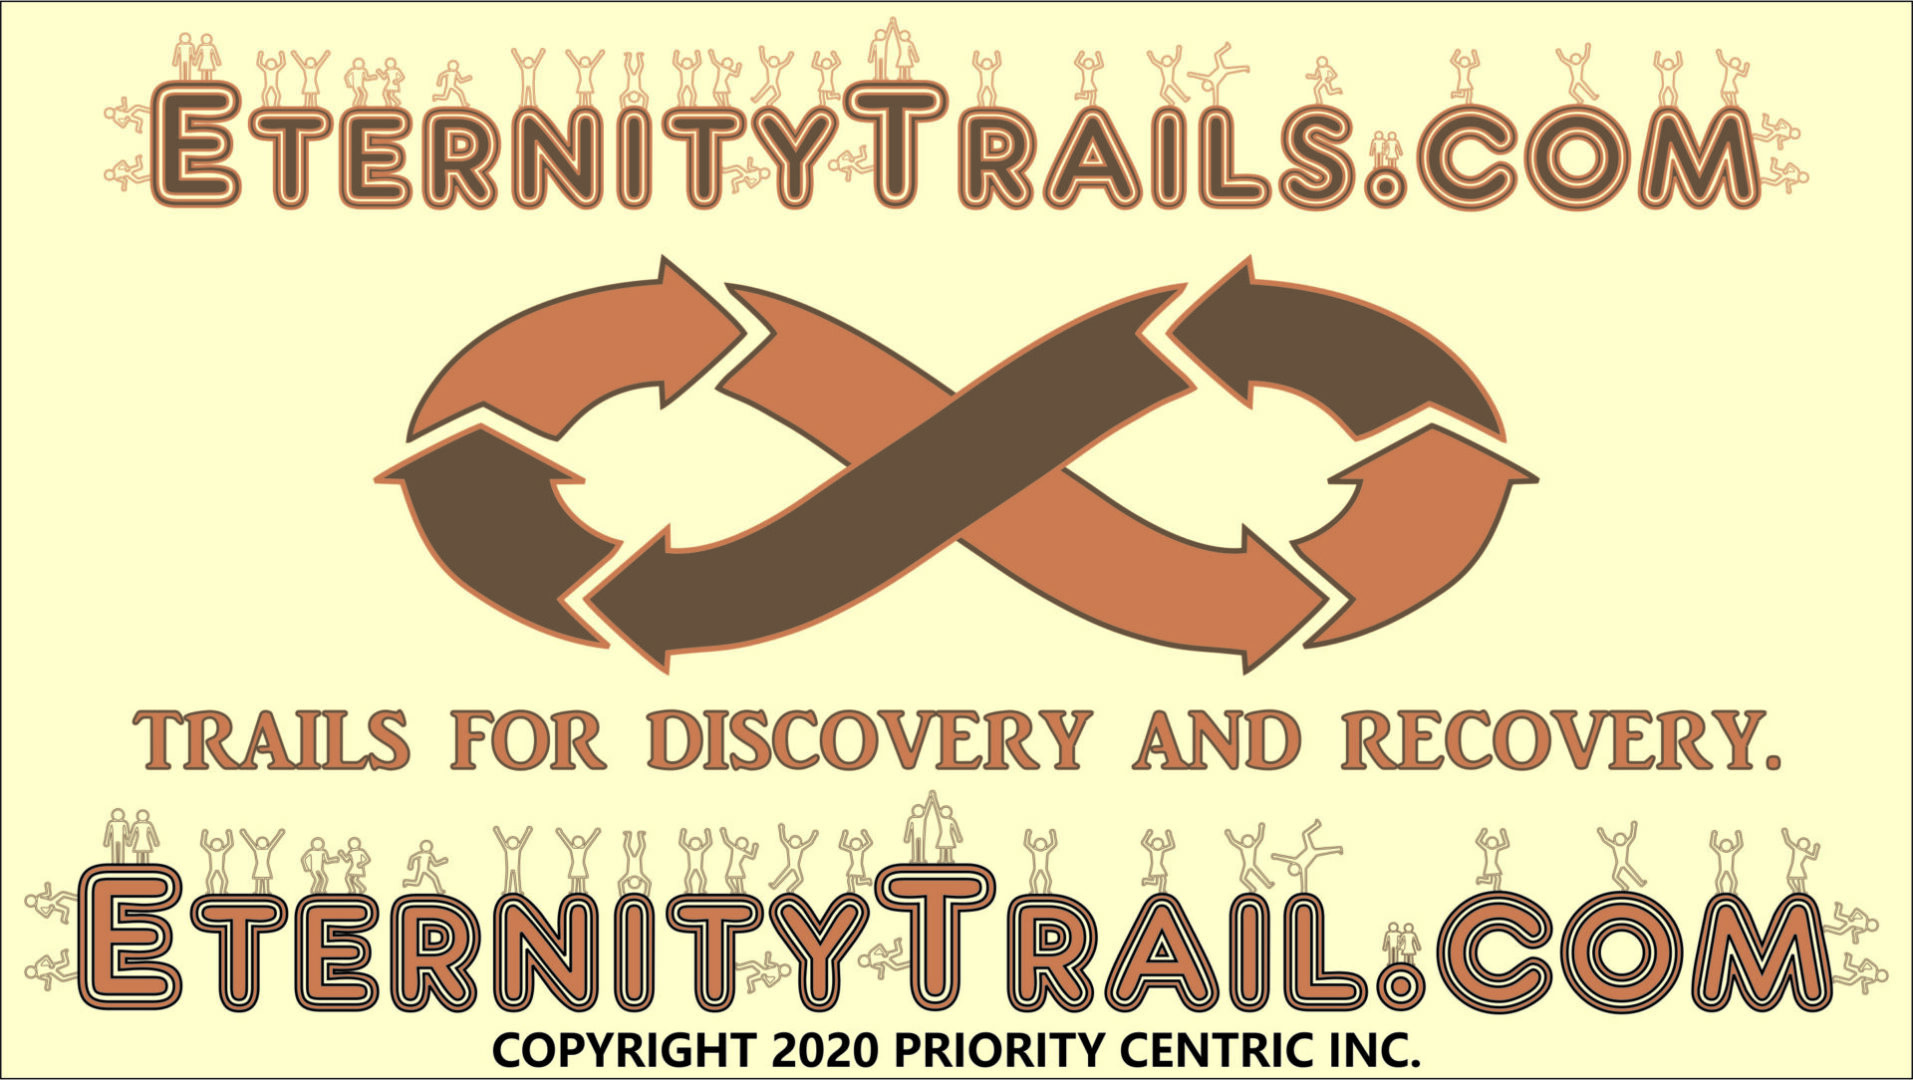 ETERNITY TRAIL LOGOS CR2020